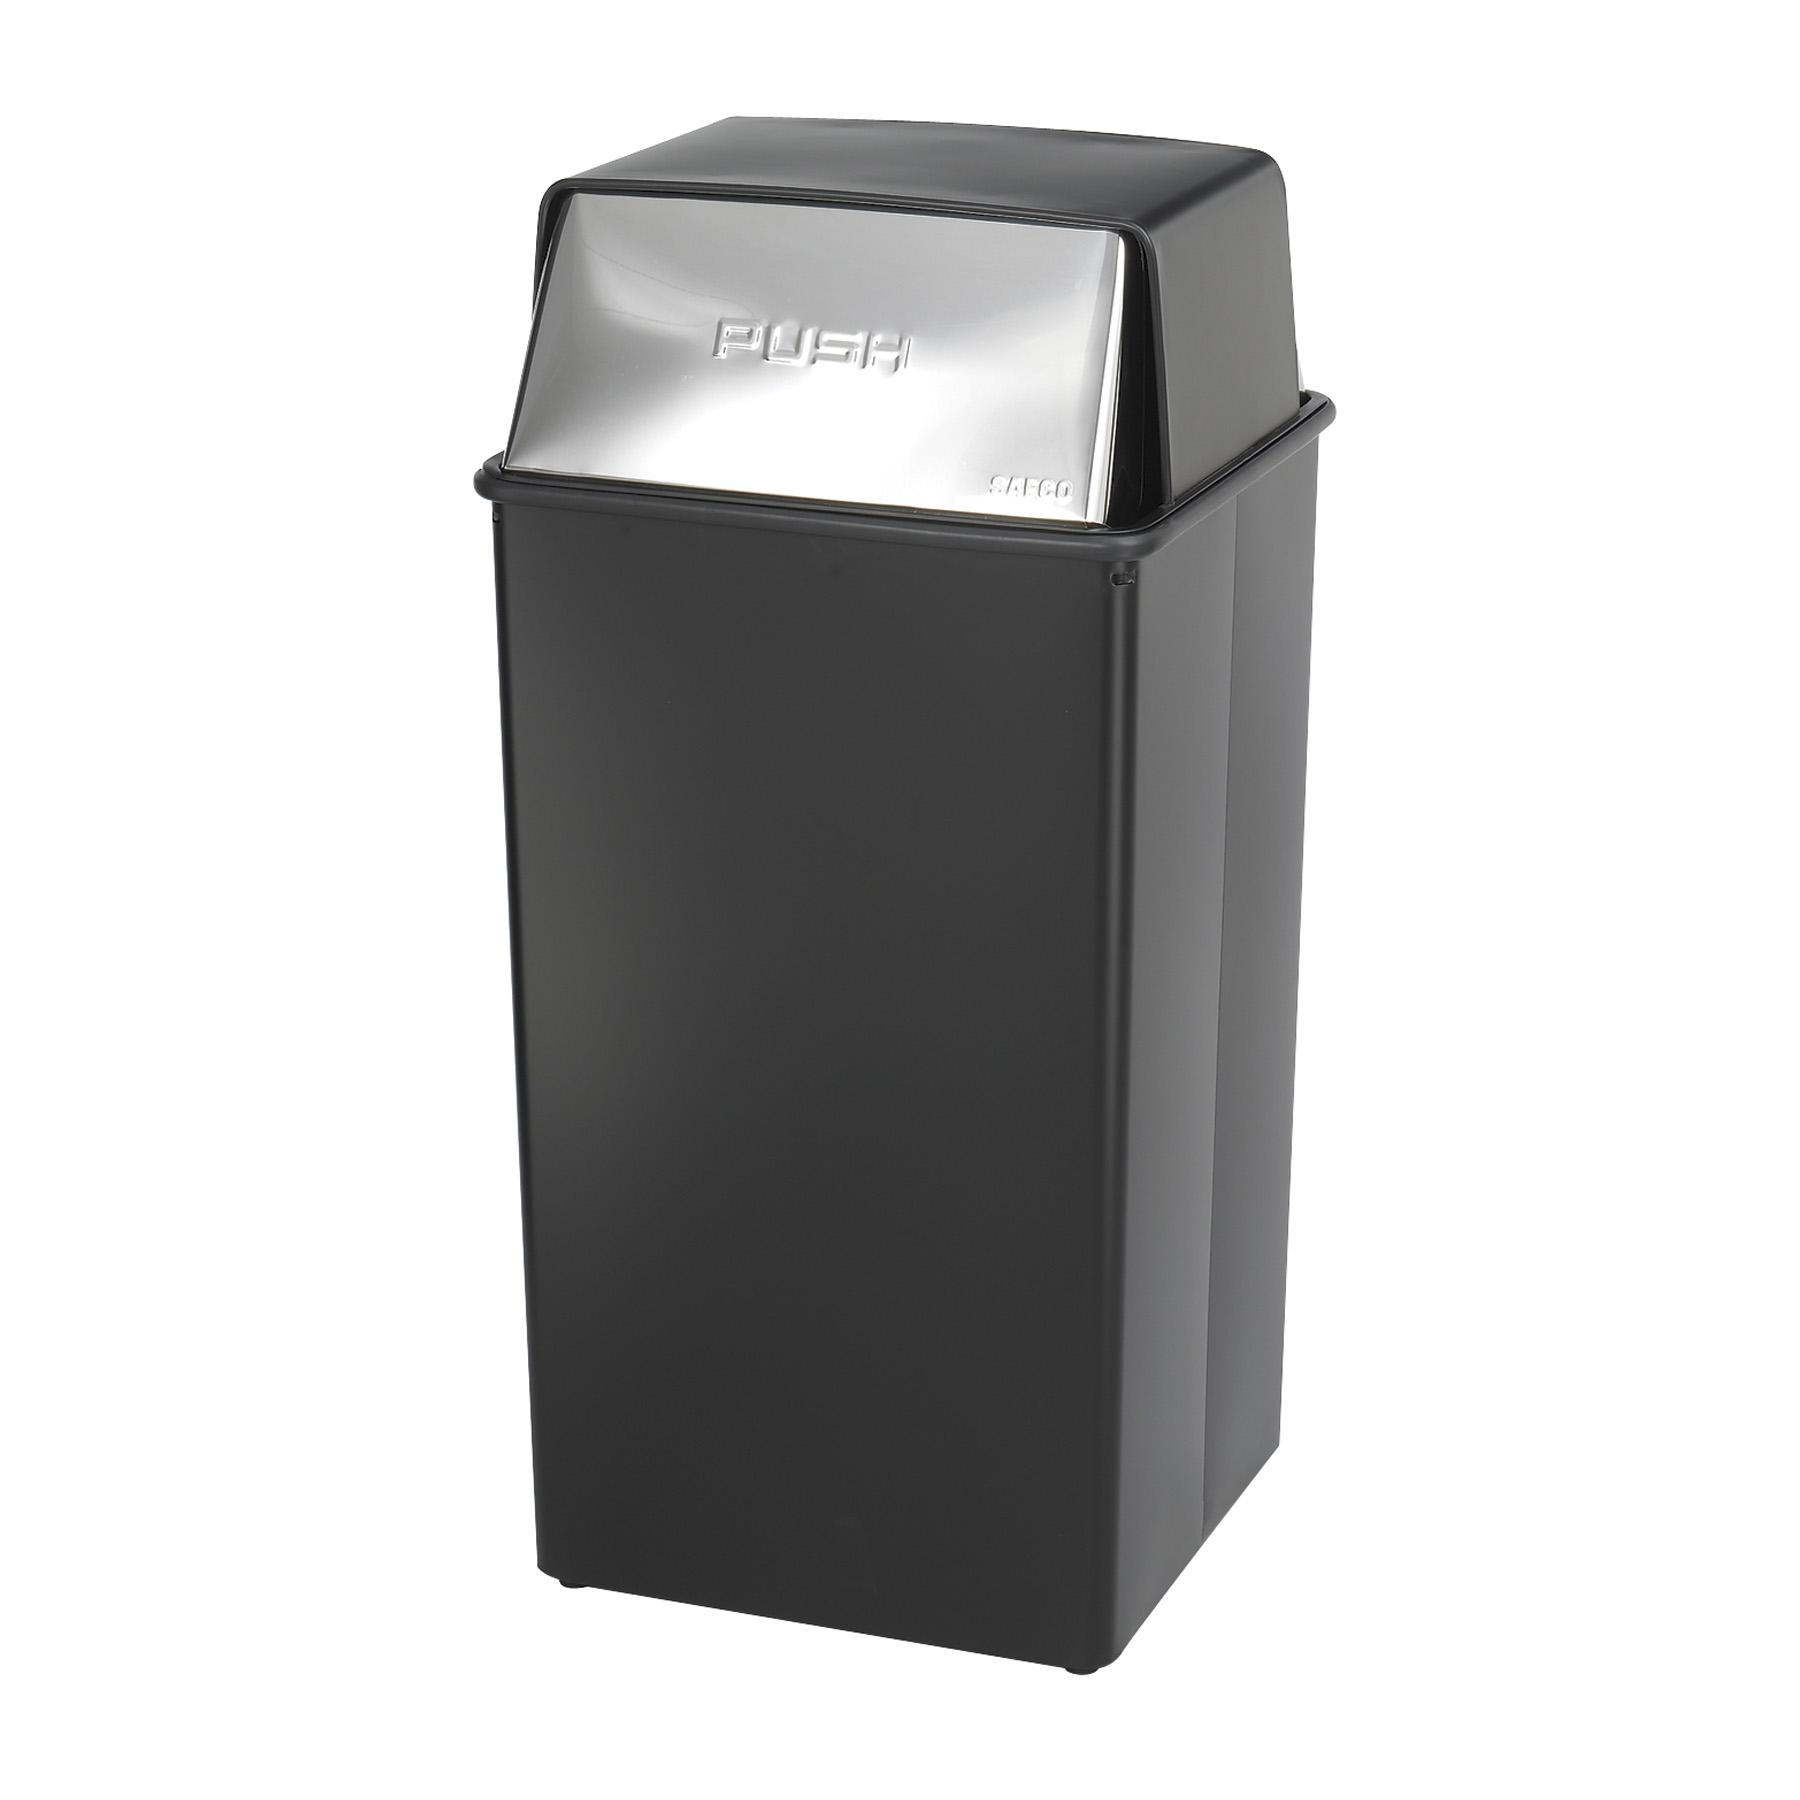 Safco Reflections Push Top Trash Receptacle